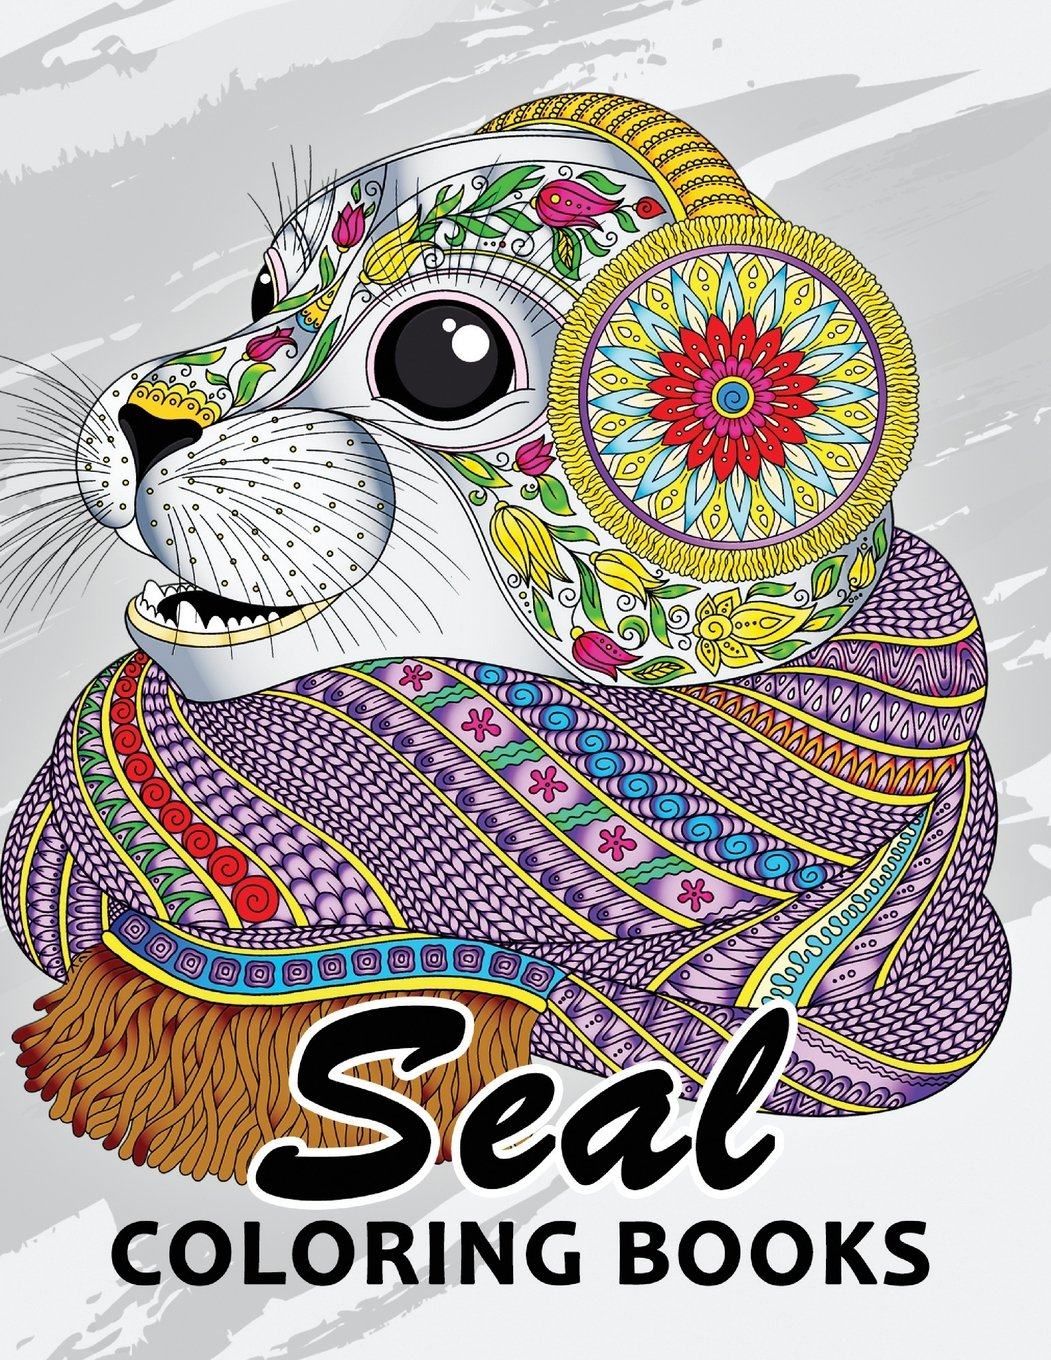 Seal coloring book unique animal coloring book easy fun beautiful coloring pages for adults and grown up paperback april 20 2018